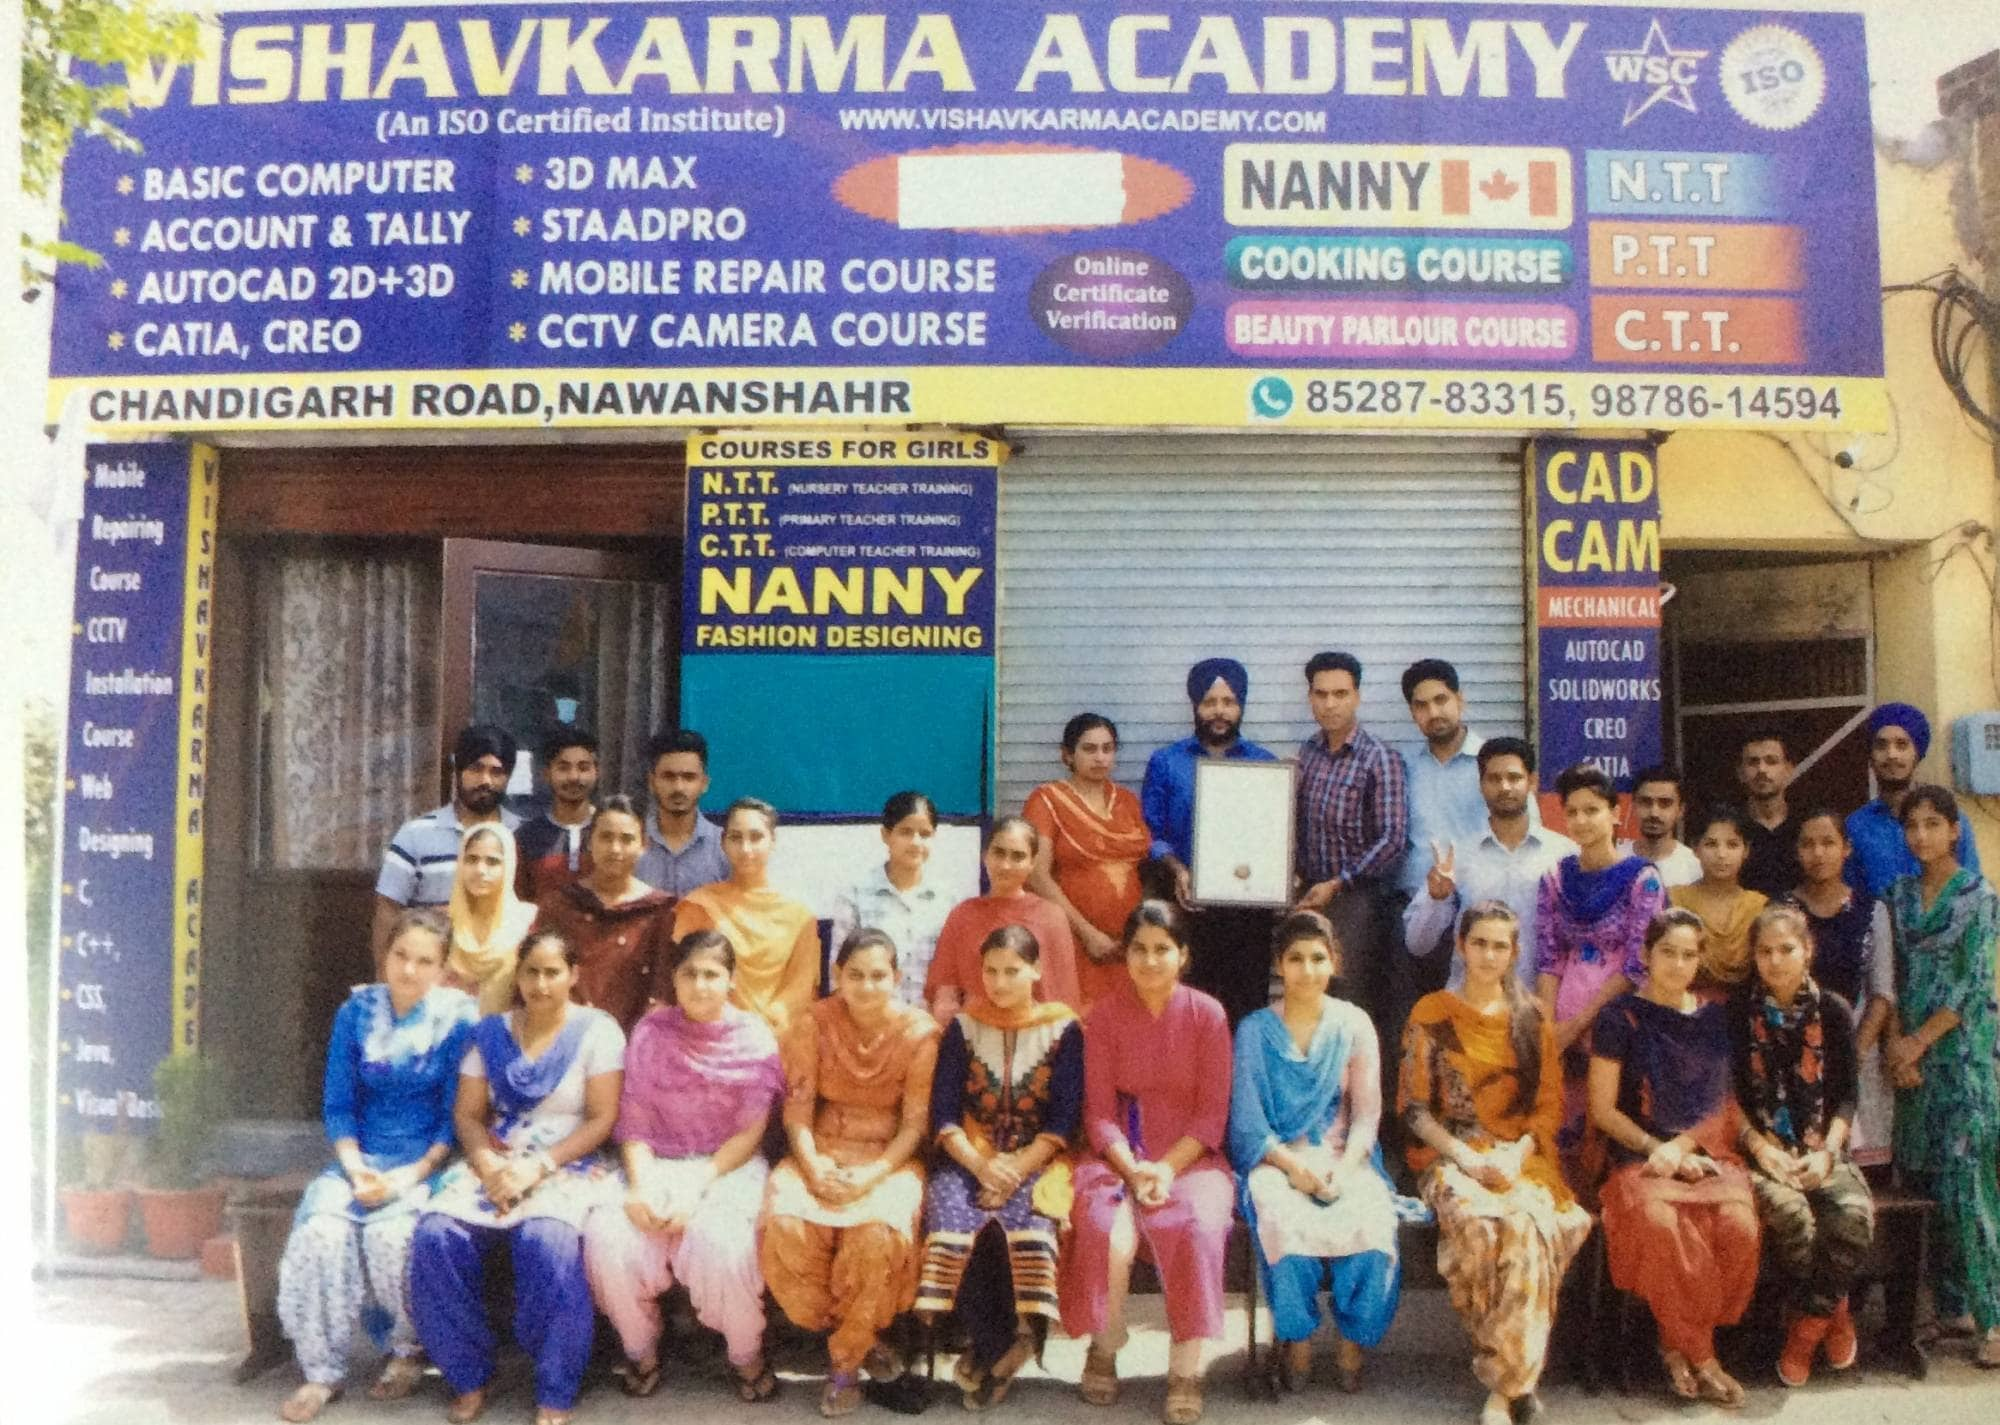 Top Tutorials For Cam in Nawanshahr - Best Teachers For Cam